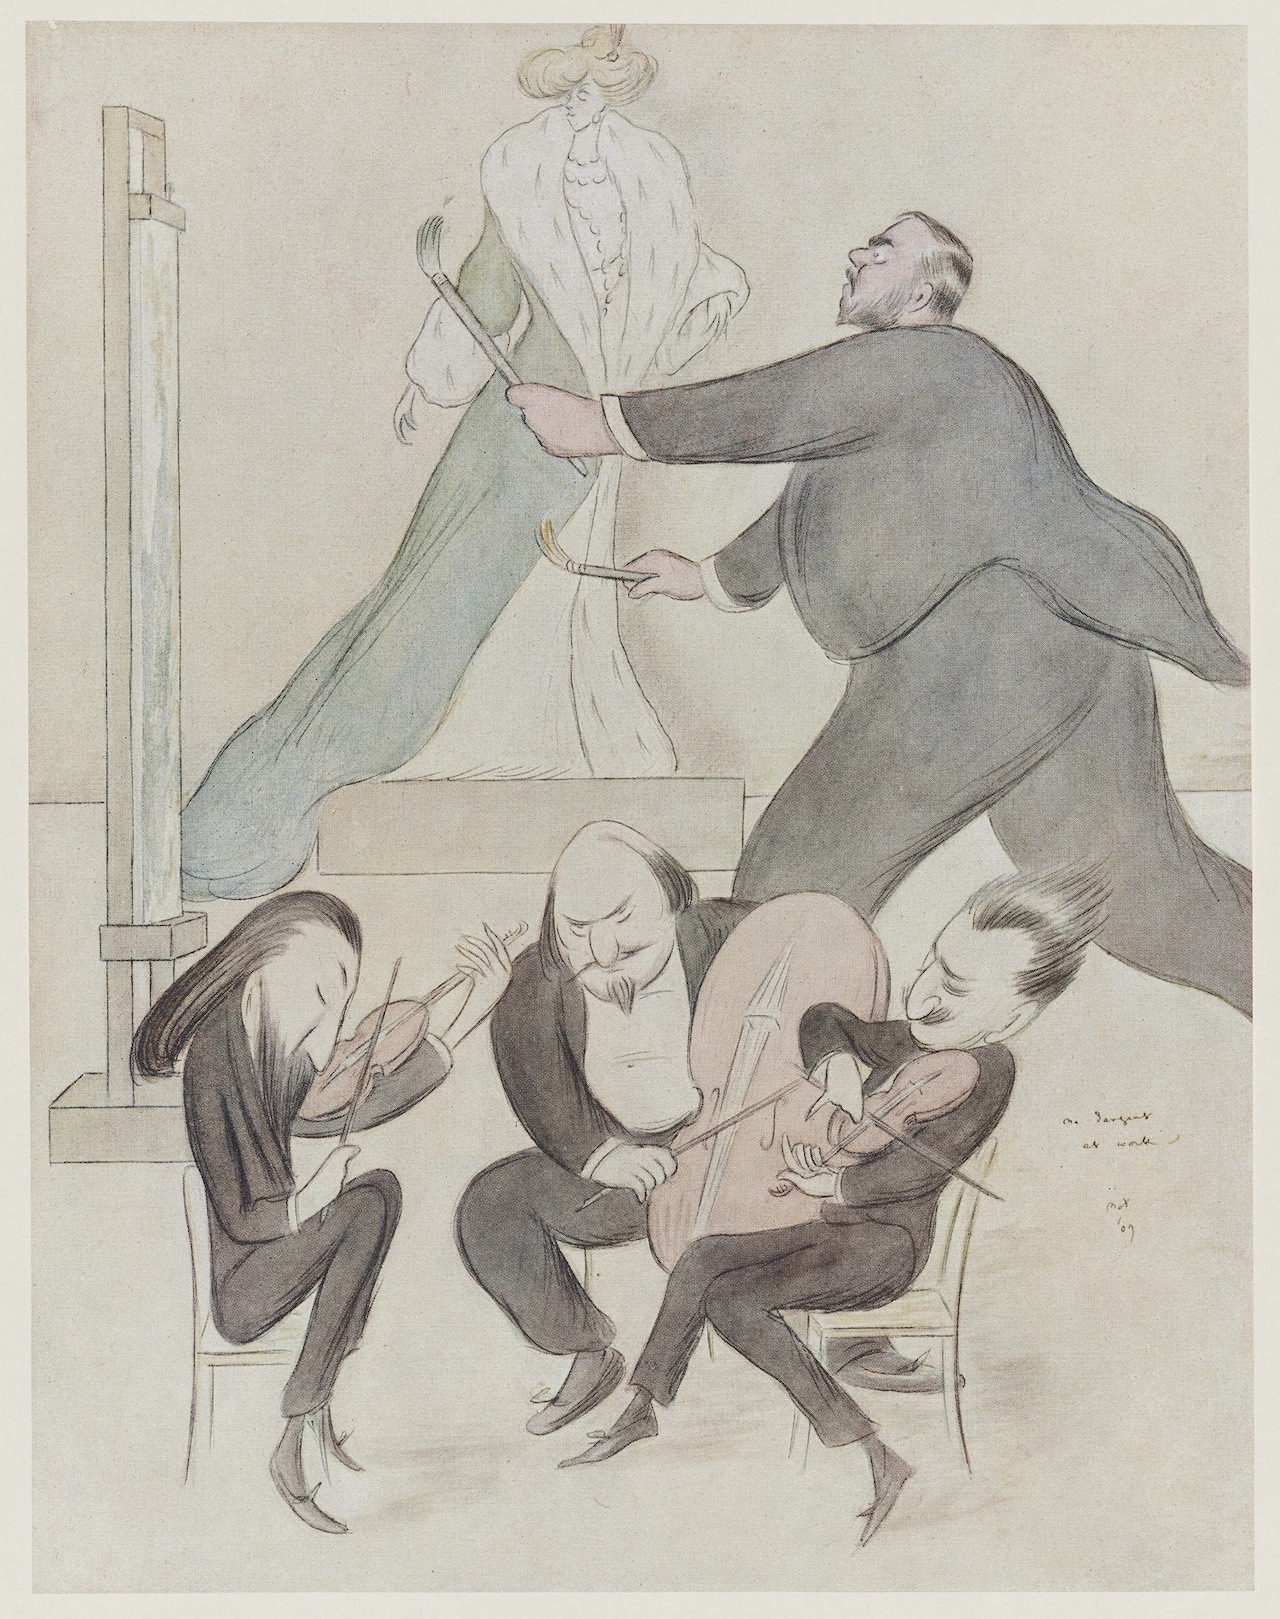 Sargent at Work Max Beerbohm (English, 1872–1956) Undated  Offset lithograph *Museum of Fine Arts, Boston.  The John Singer Sargent Archive—Gift of Jan and Warren Adelson *Photograph © Museum of Fine Arts, Boston